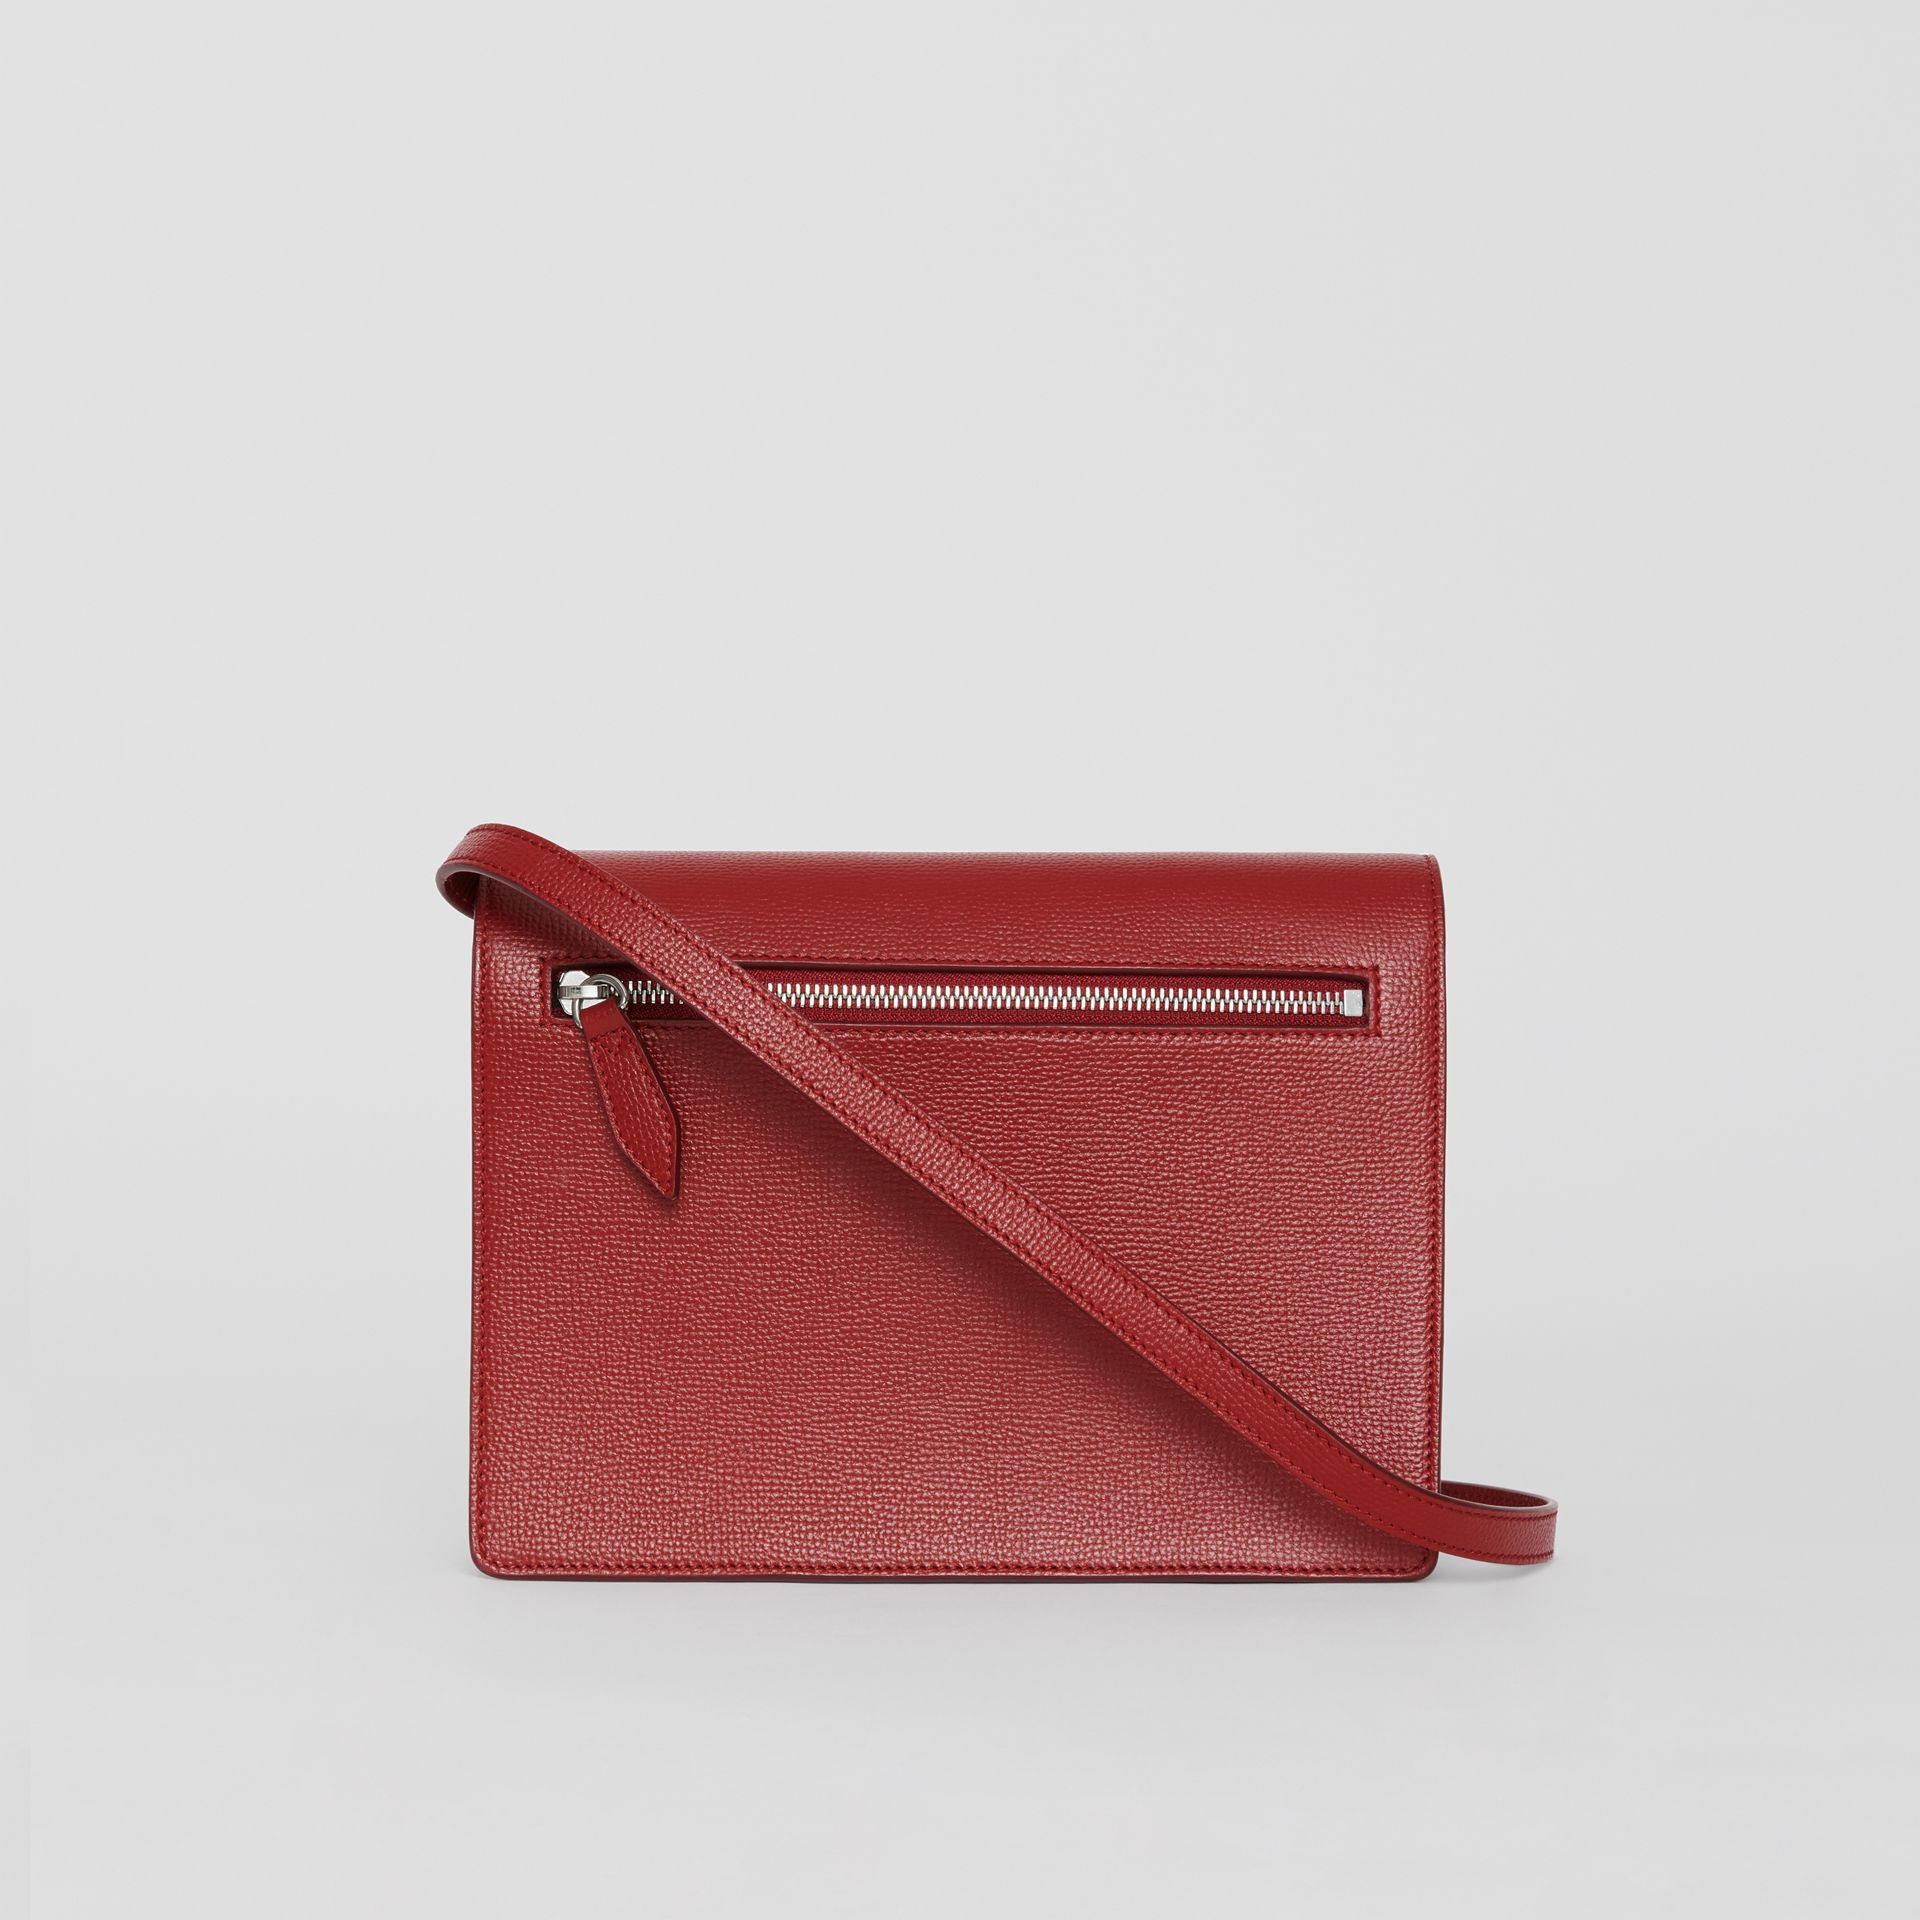 Small Vintage Check and Leather Crossbody Bag in Crimson - Women | Burberry - gallery image 5